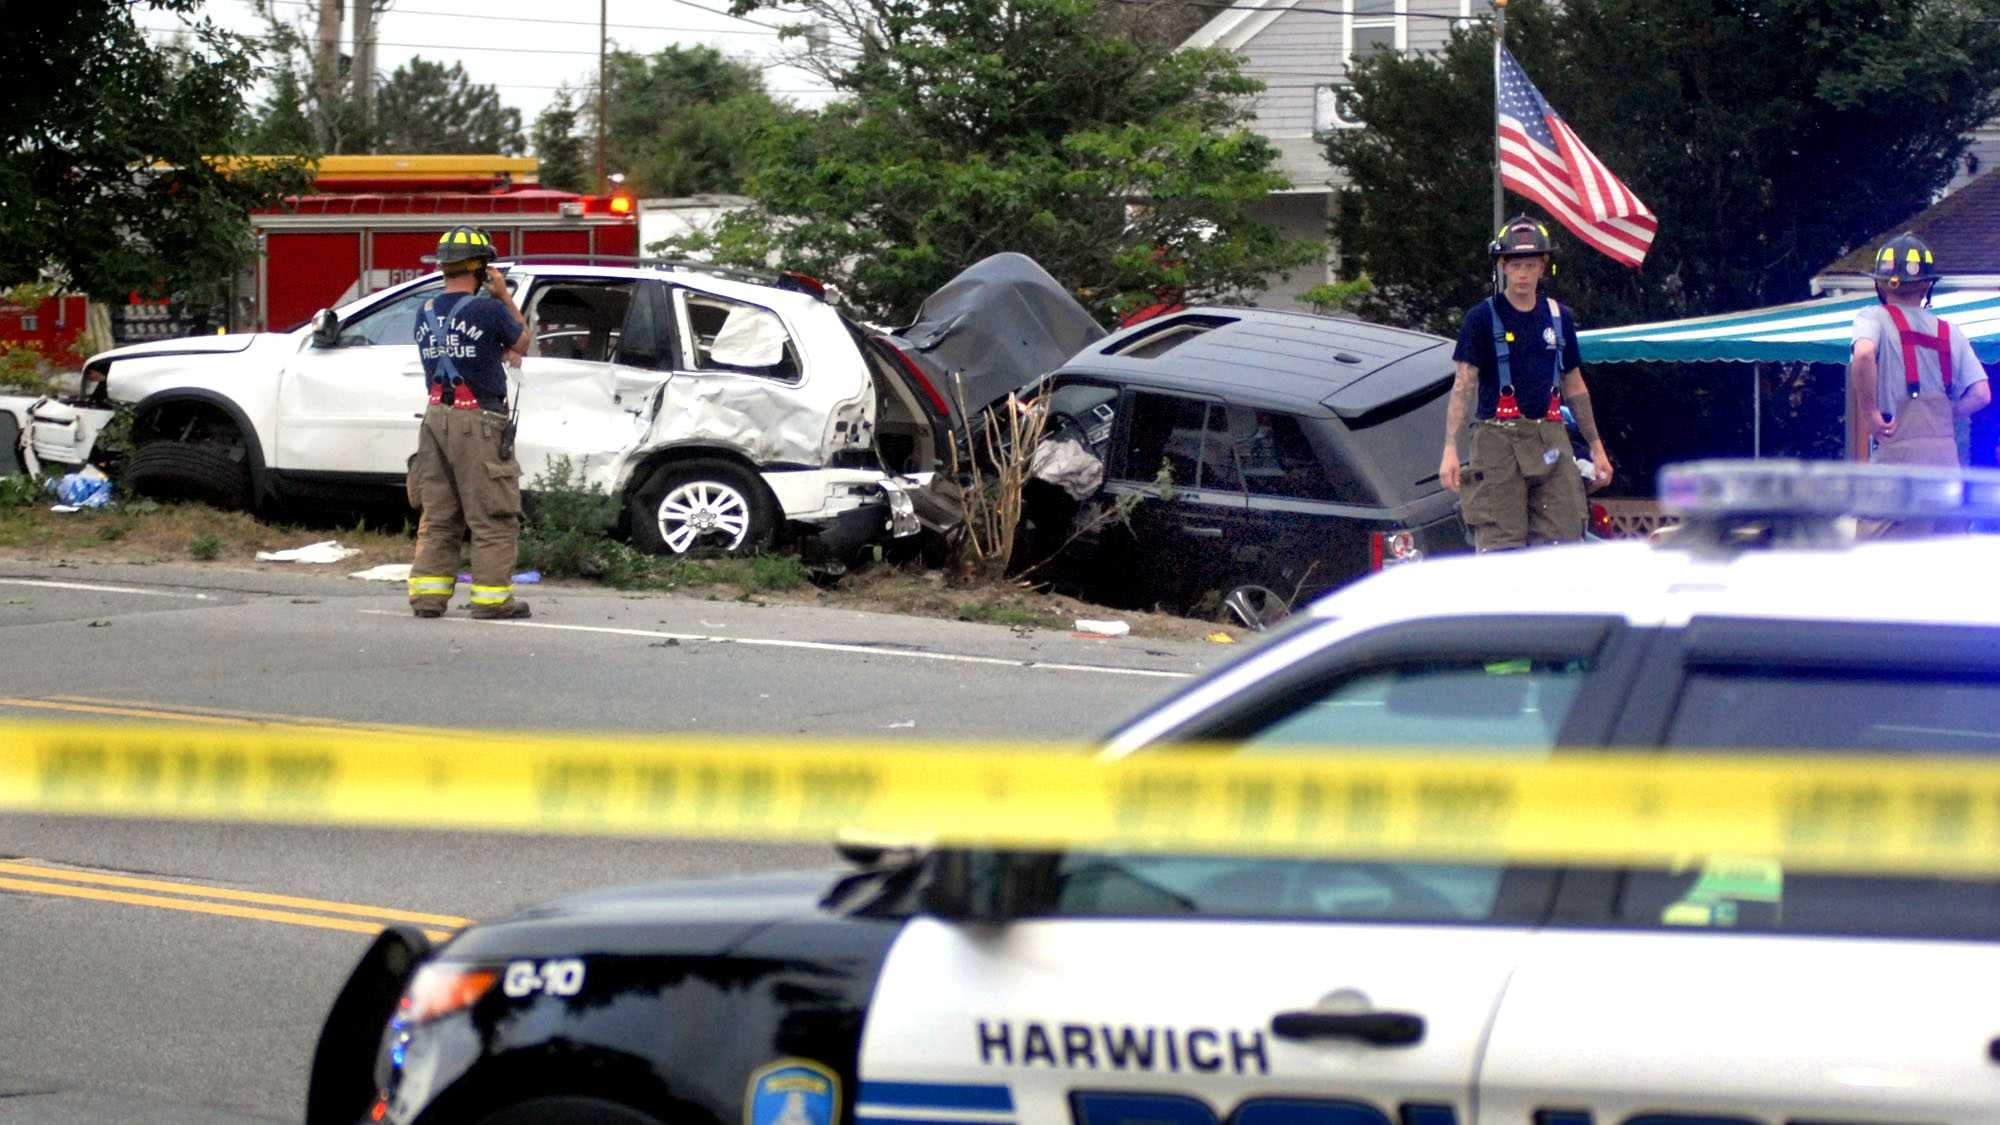 Police pursuit ends in crash in Chatham